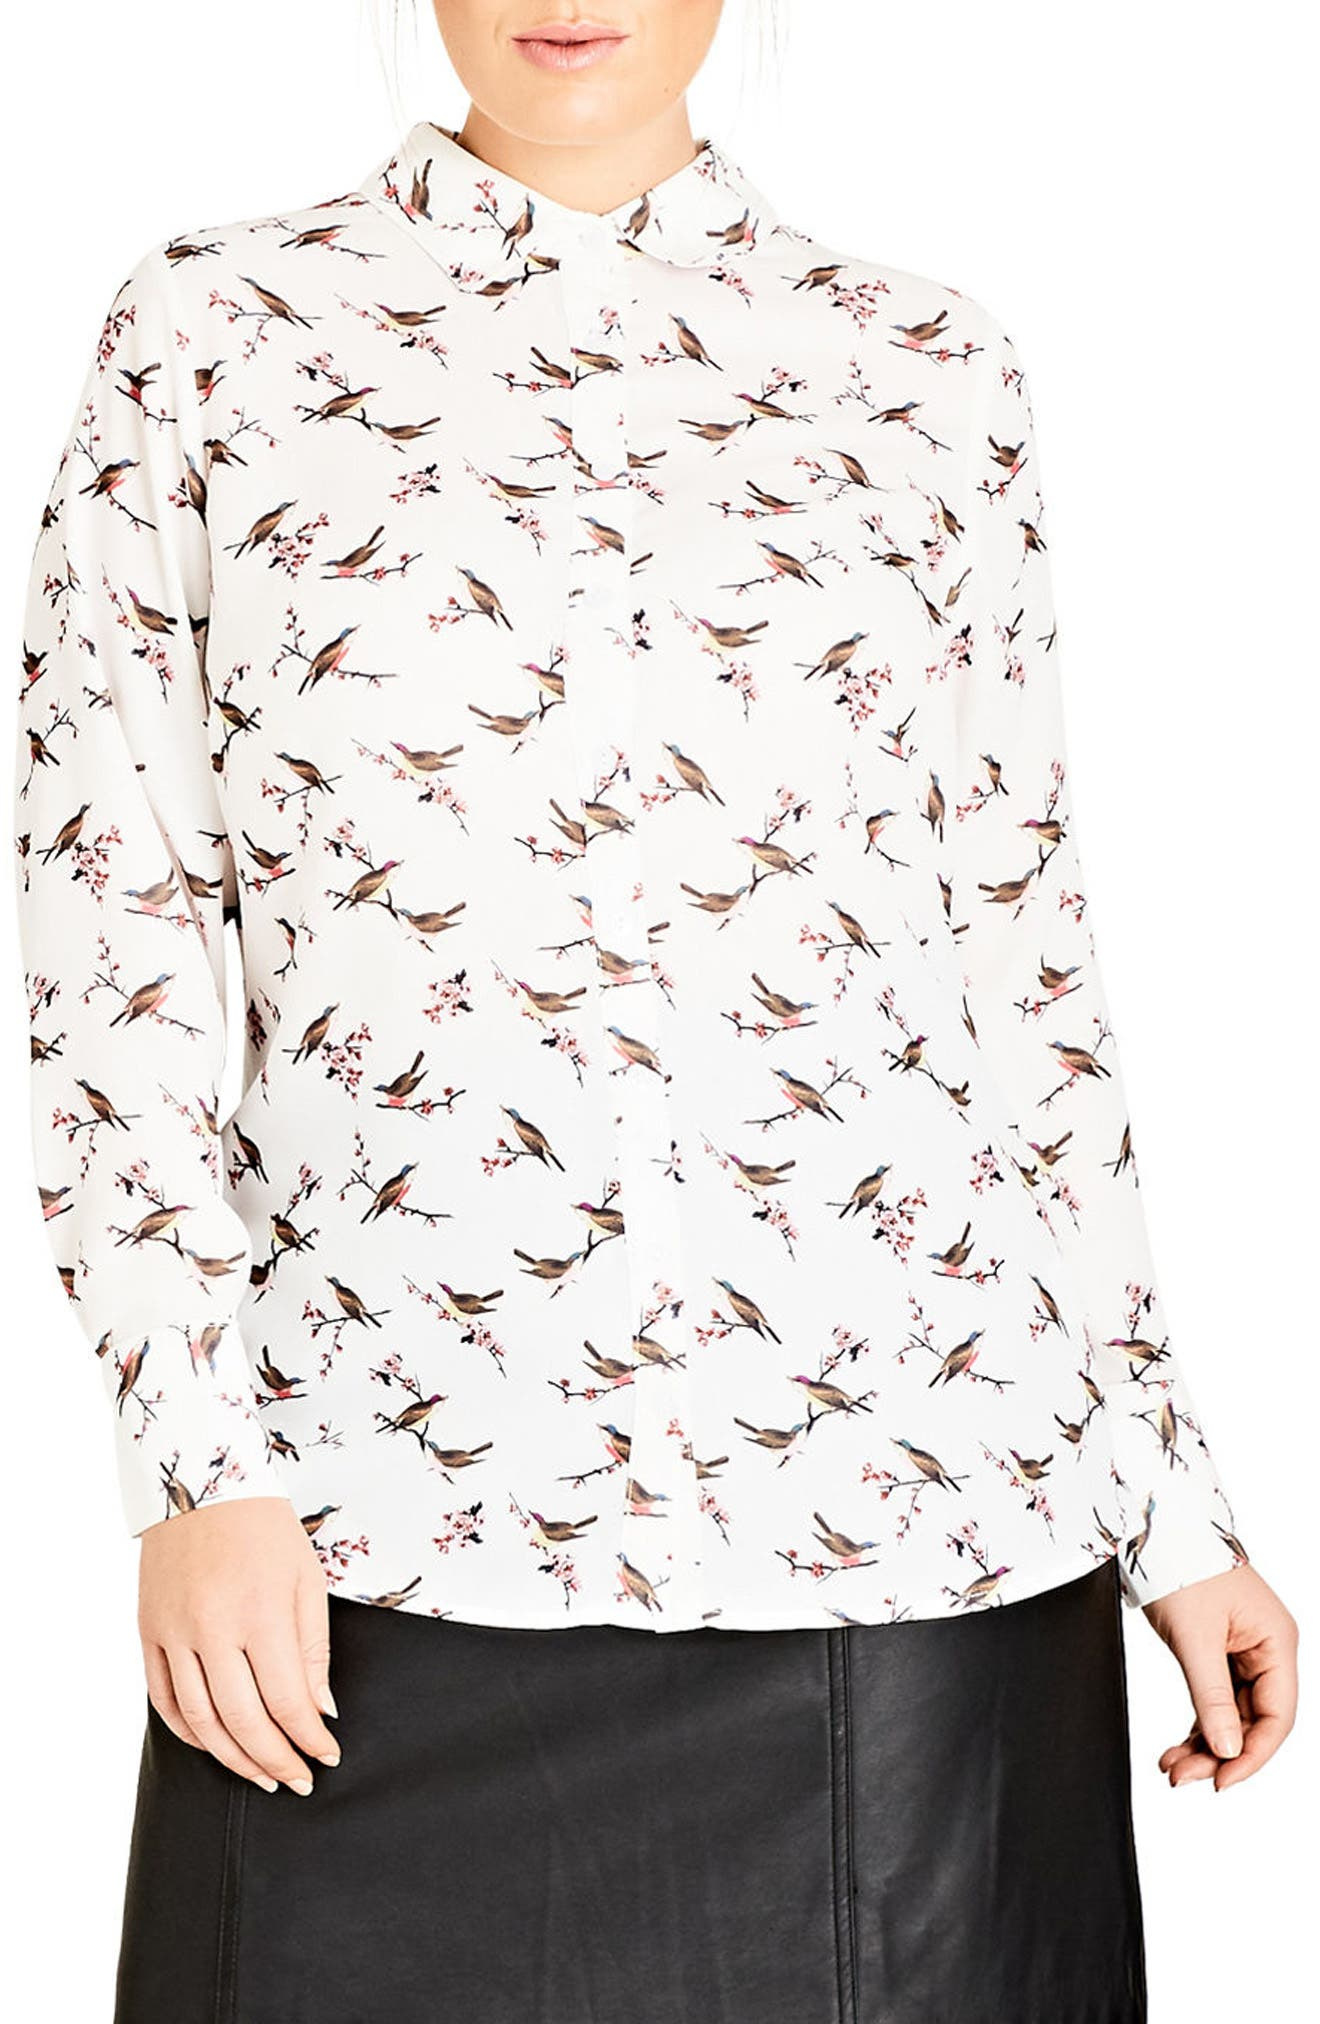 Alternate Image 1 Selected - City Chic Birdy Shirt (Plus Size)